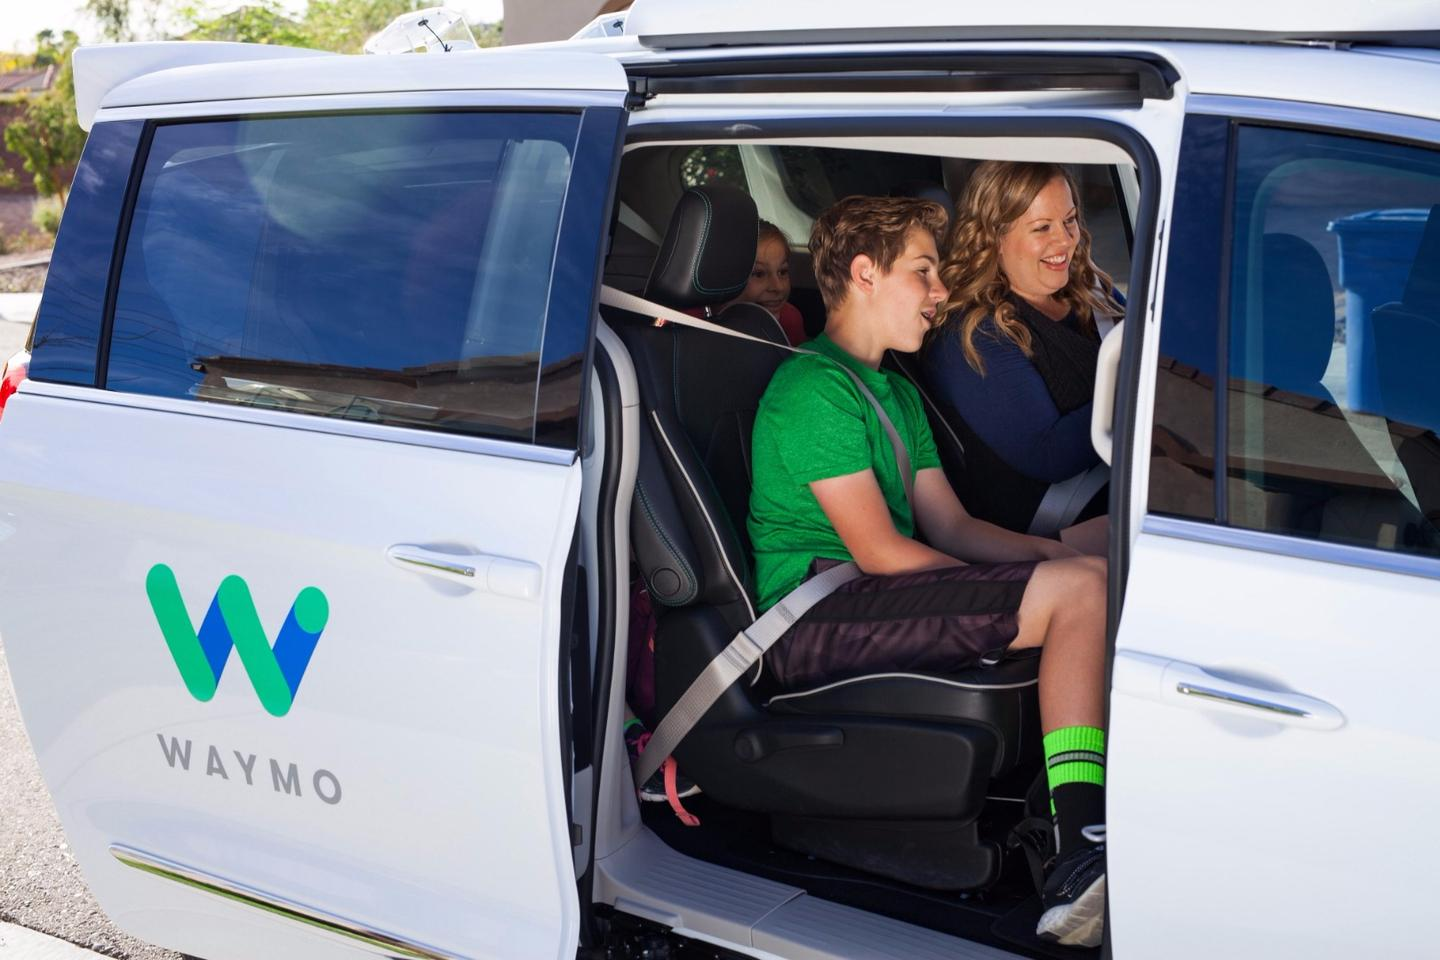 Waymo cars are going to be available for regular people to use inArizona